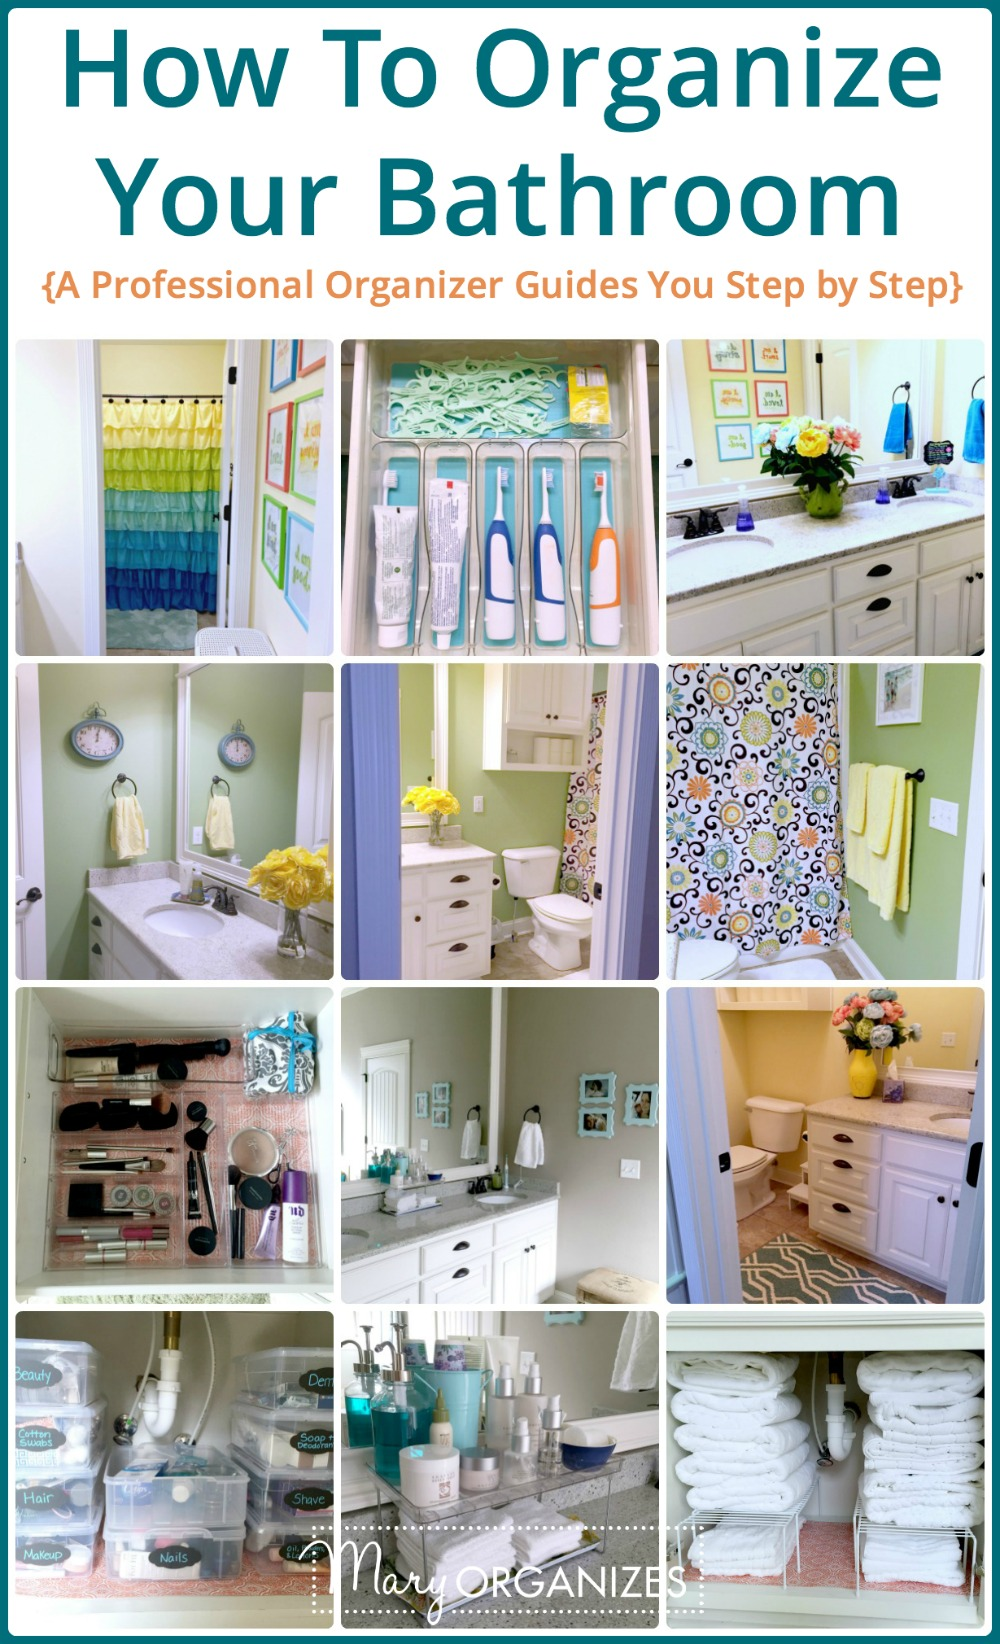 How To Organize Your Bathroom V  Creatingmaryshomecom. Red Polka Dot Kitchen Accessories. Modern White Kitchen Appliances. Storage Boxes For Kitchen. Kitchen Island With Storage And Seating. Modern Kitchen Paint Colors Ideas. Red Pottery Barn Kitchen. Barefoot In The Kitchen Country Song. Modern Kitchen Interior Design